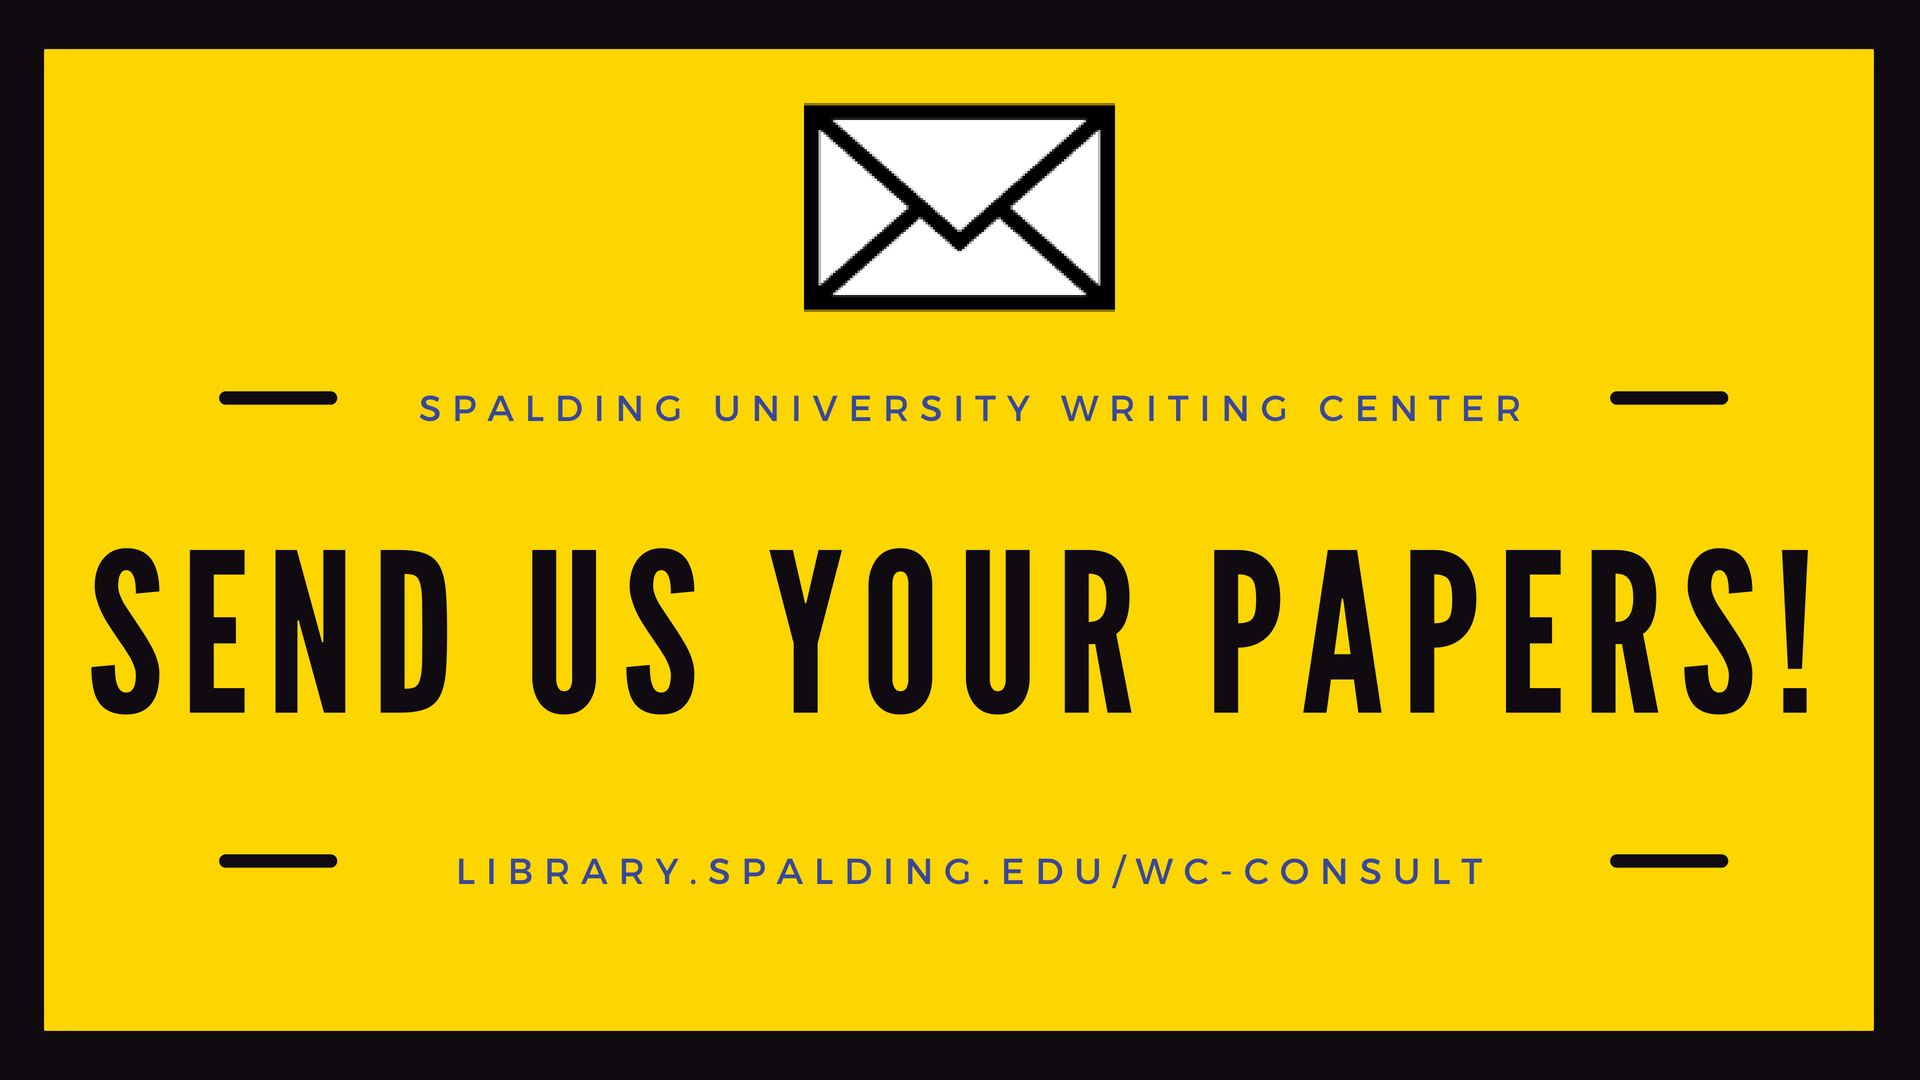 Spalding University Writing Center, Send Us Your Papers! library.spaldgin.edu/wc-consult